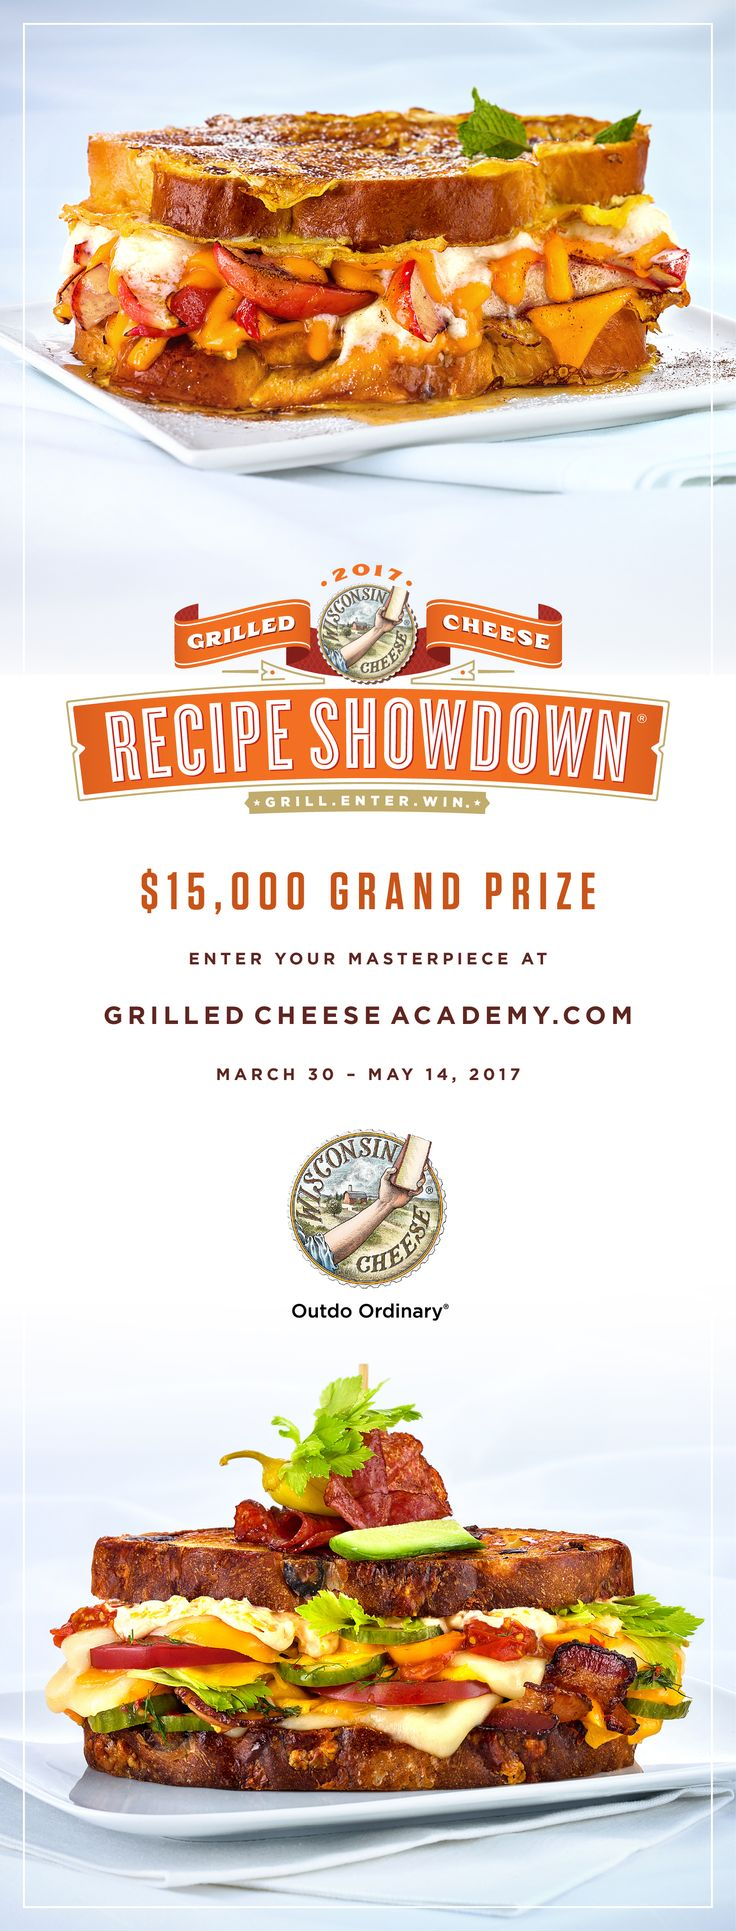 Enter to win at GrilledCheeseAcademy.com!